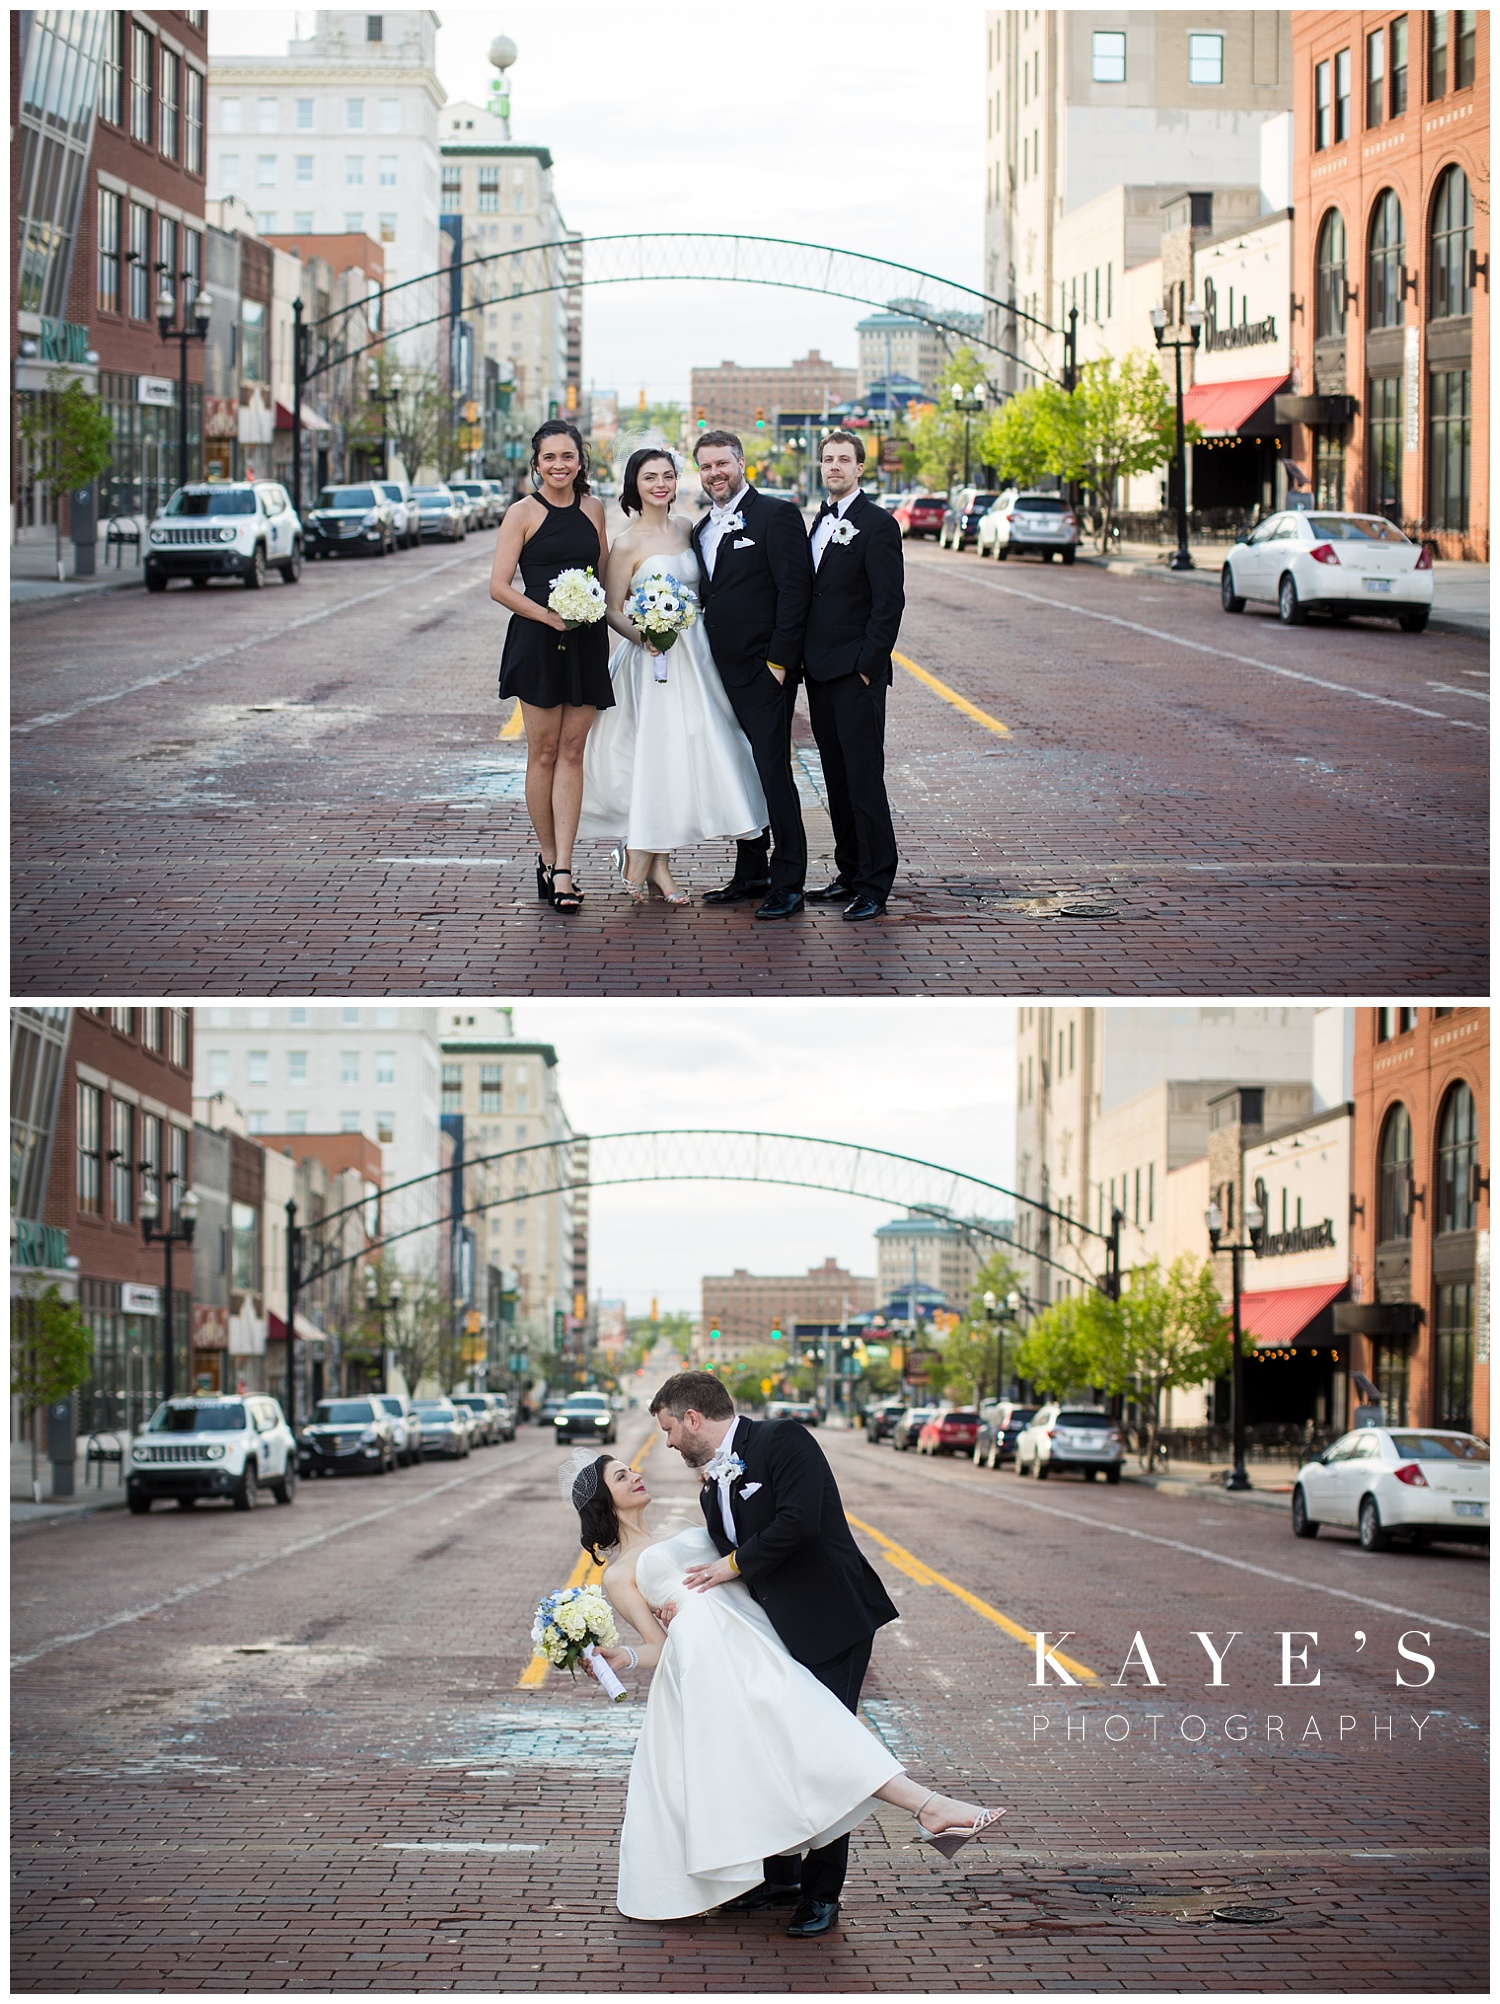 bridal party photo in the street of flint michigan after the wedding ceremony